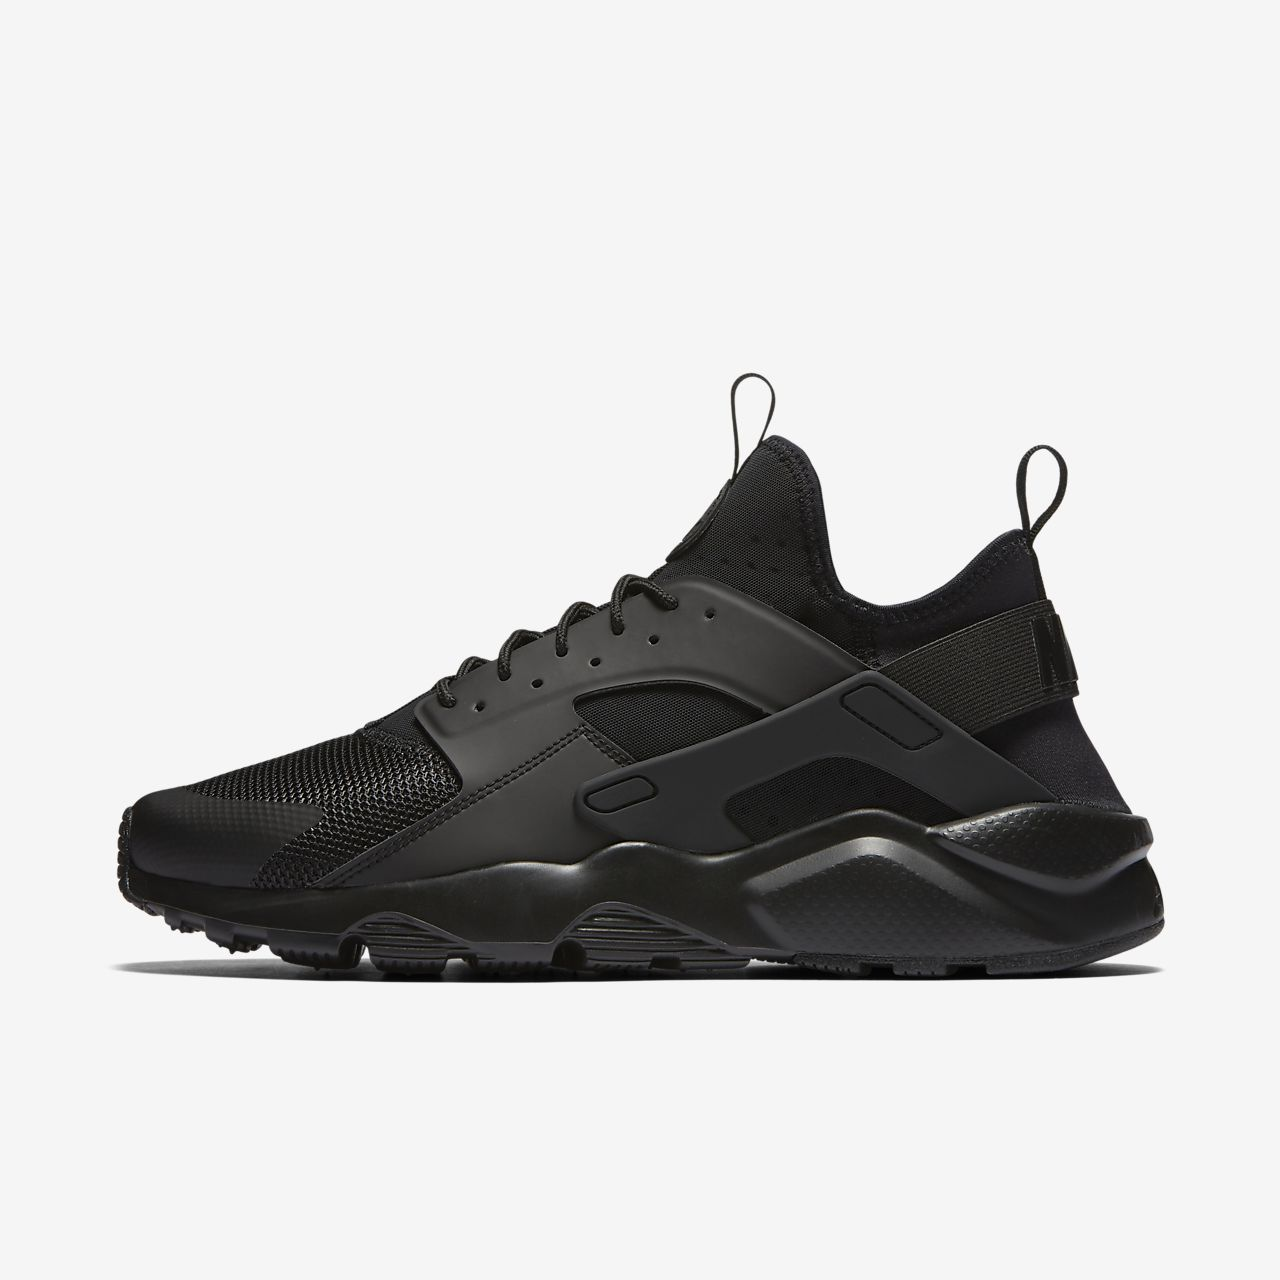 a3edf66128f18 Nike Air Huarache Ultra Men s Shoe. Nike.com LU